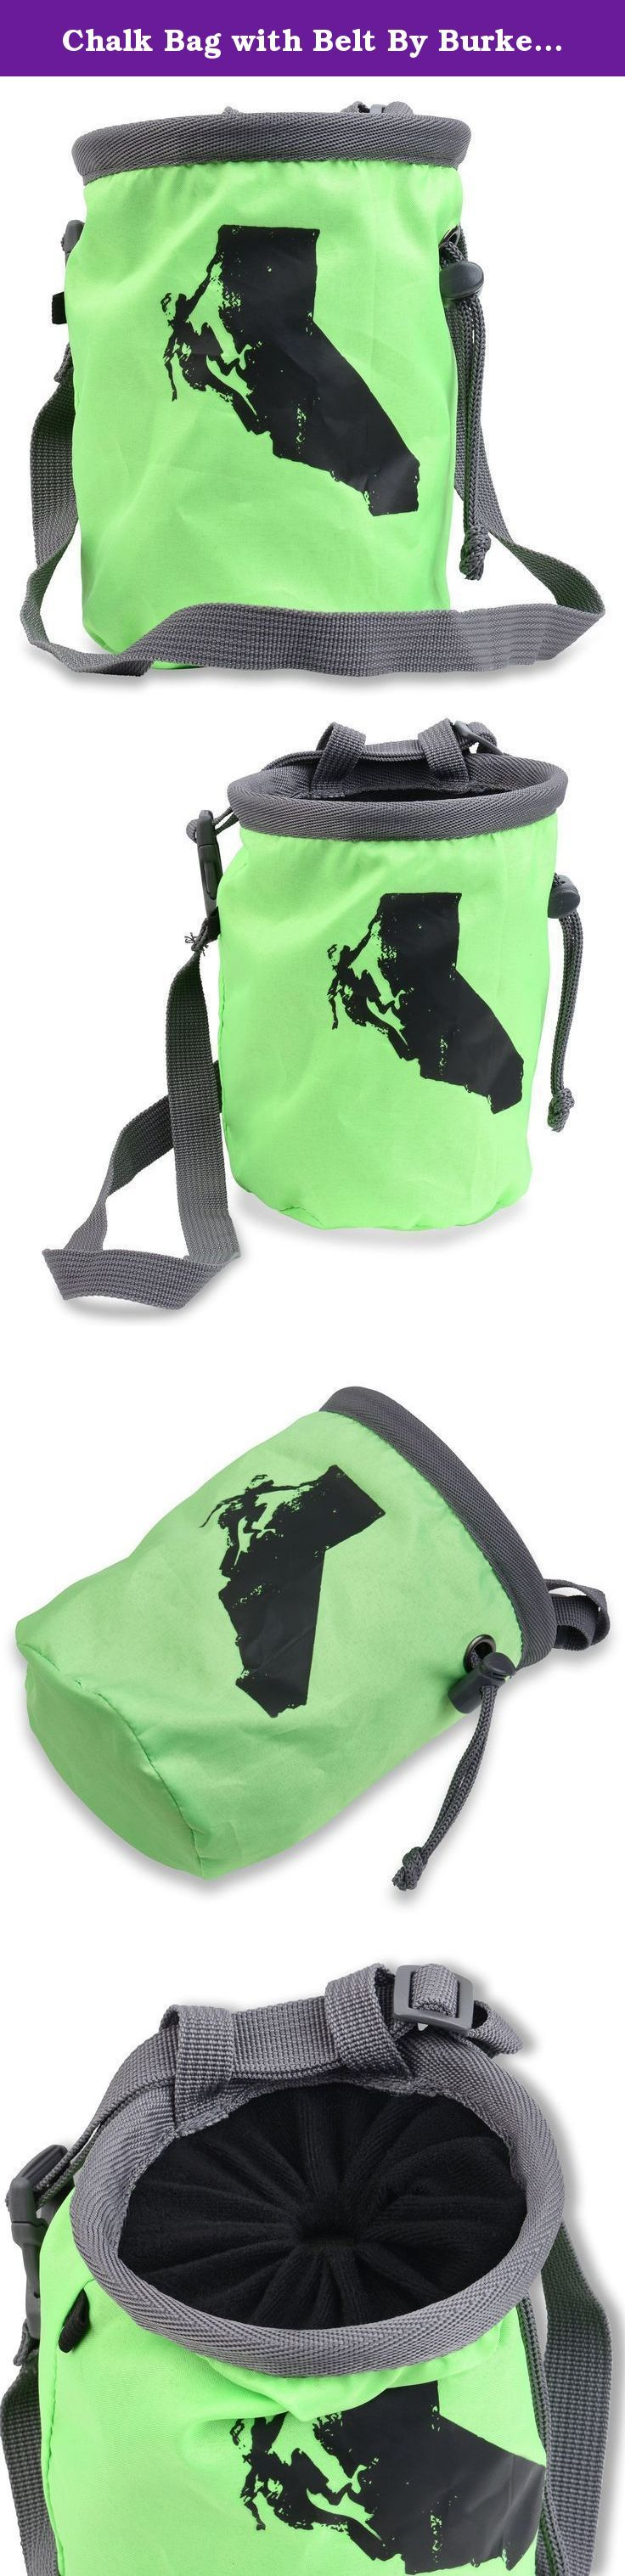 """Chalk Bag with Belt By Burke's Climbing Works, Great Rock, Mountain Climbing Gear, Great for Indoor Rock Climbing, Bouldering, Gymnastics and Weightlifting. Burke's Climbing Works """"Climb California"""" chalk bag uses a simple design of lightweight fabric attached to a sturdy flexible rim with a drawstring cinch to create an extra tight seal to prevent annoying chalk leaks. Adjustable belt included so you can wear it while tackling that tricky V6, or attach it to your climbing harness to help..."""